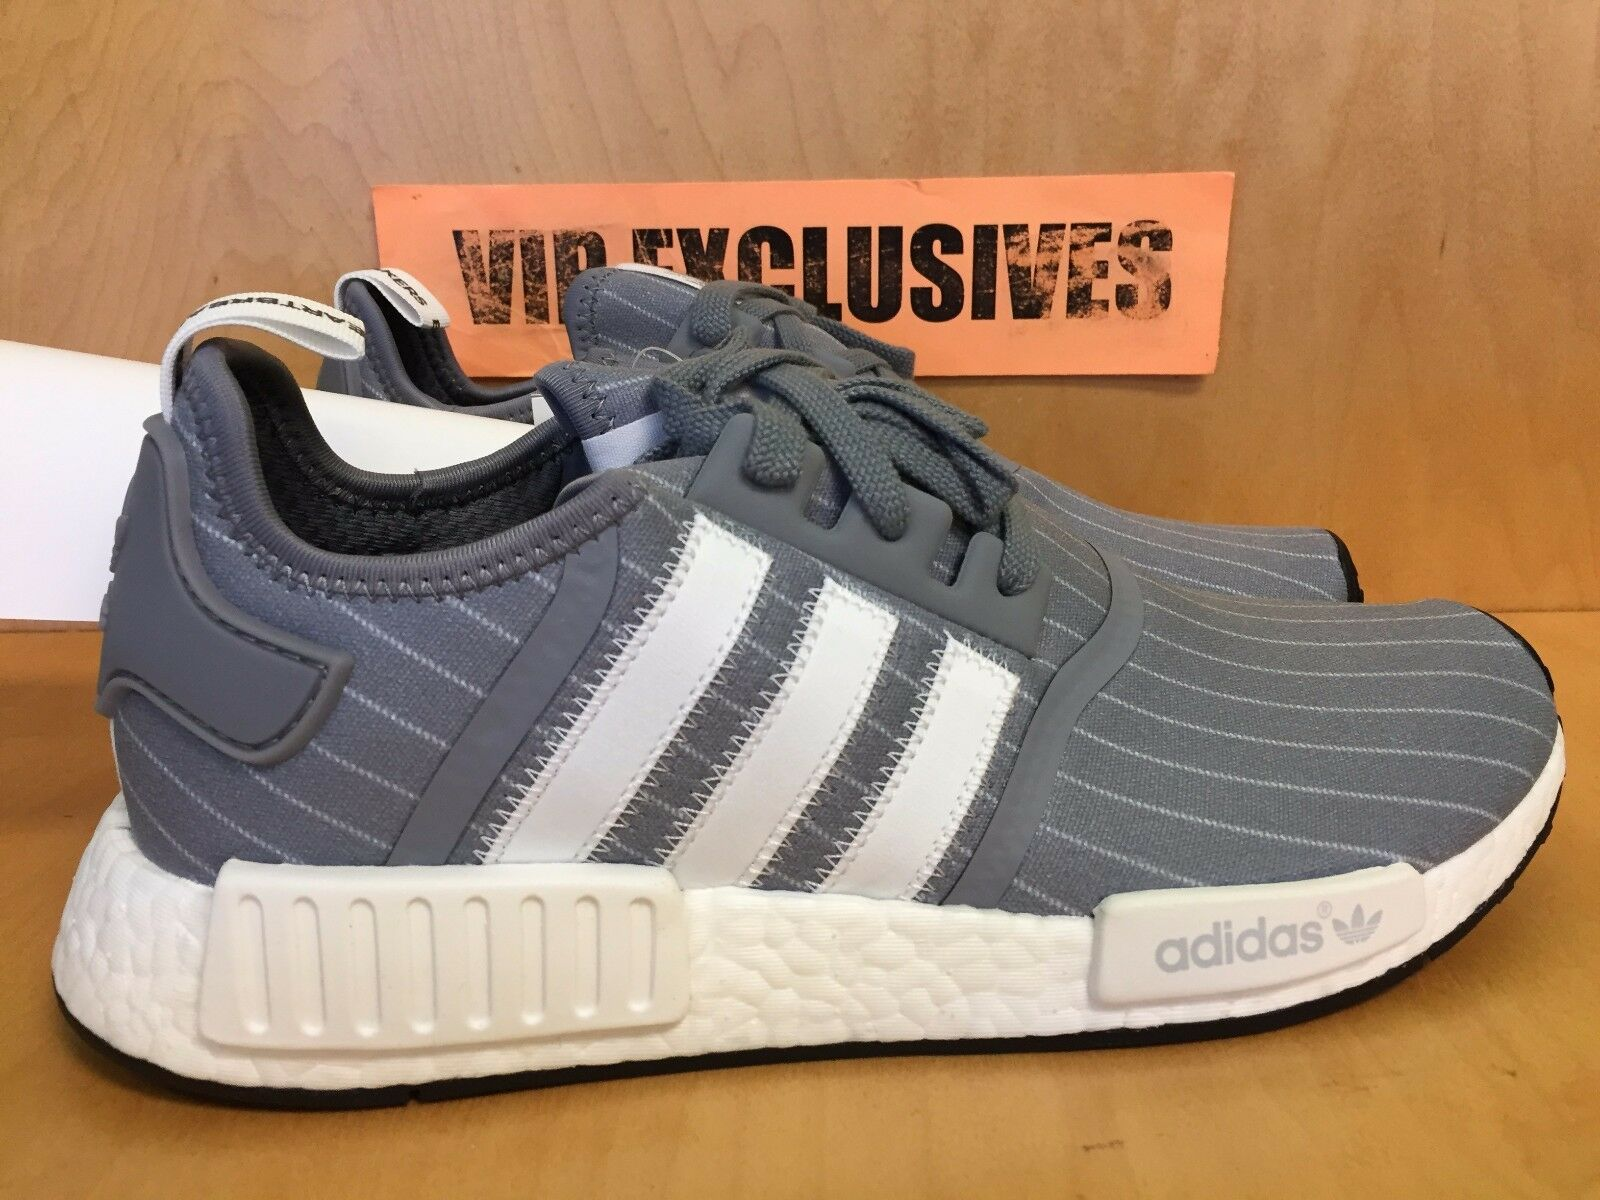 Adidas NMD Gray R1 Beckman gris - blanco los Heartbreakers Gray NMD Nomad Runner bb3123 9ee630